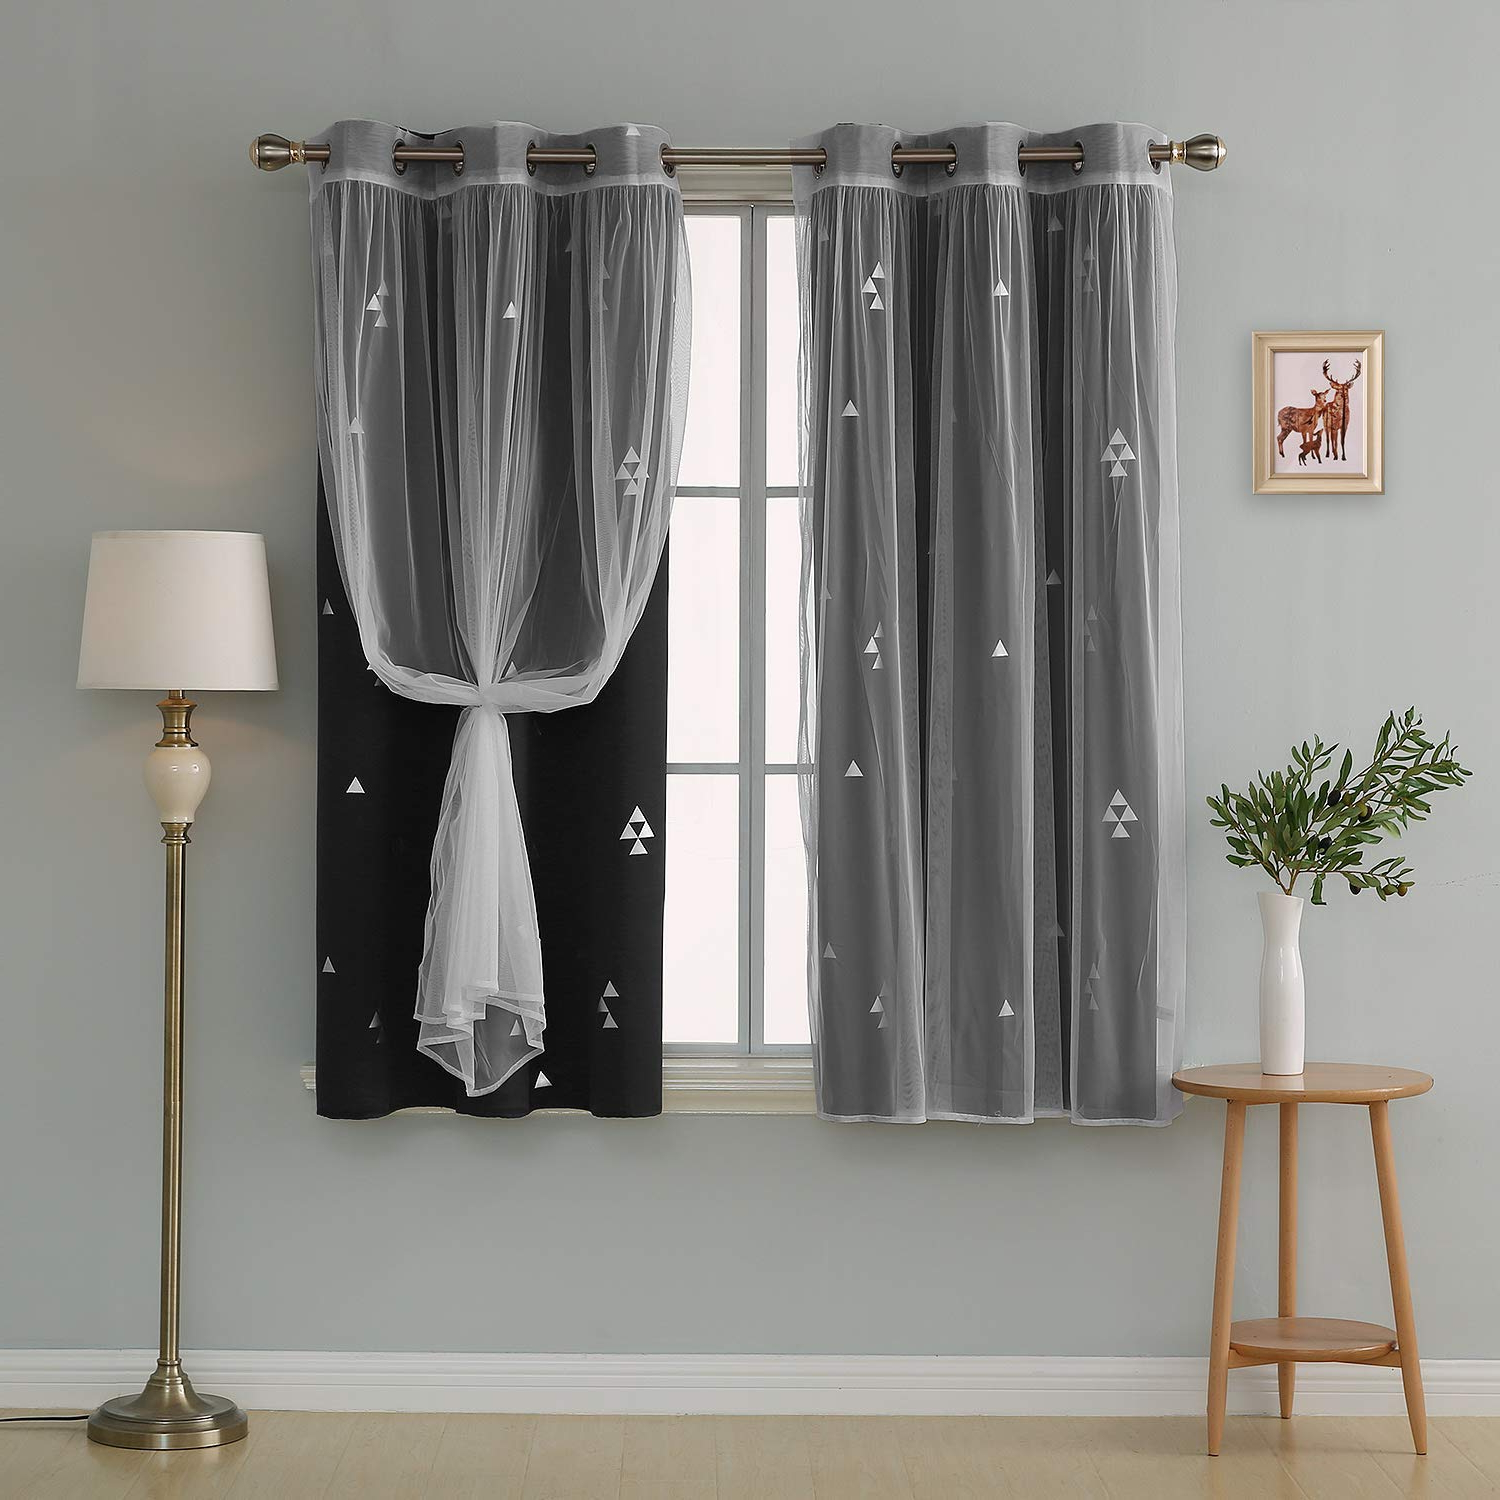 2020 Curtain 4 Top Grommet With Room Living For Curtains Sheer Throughout Mix And Match Blackout Blackout Curtains Panel Sets (View 17 of 20)